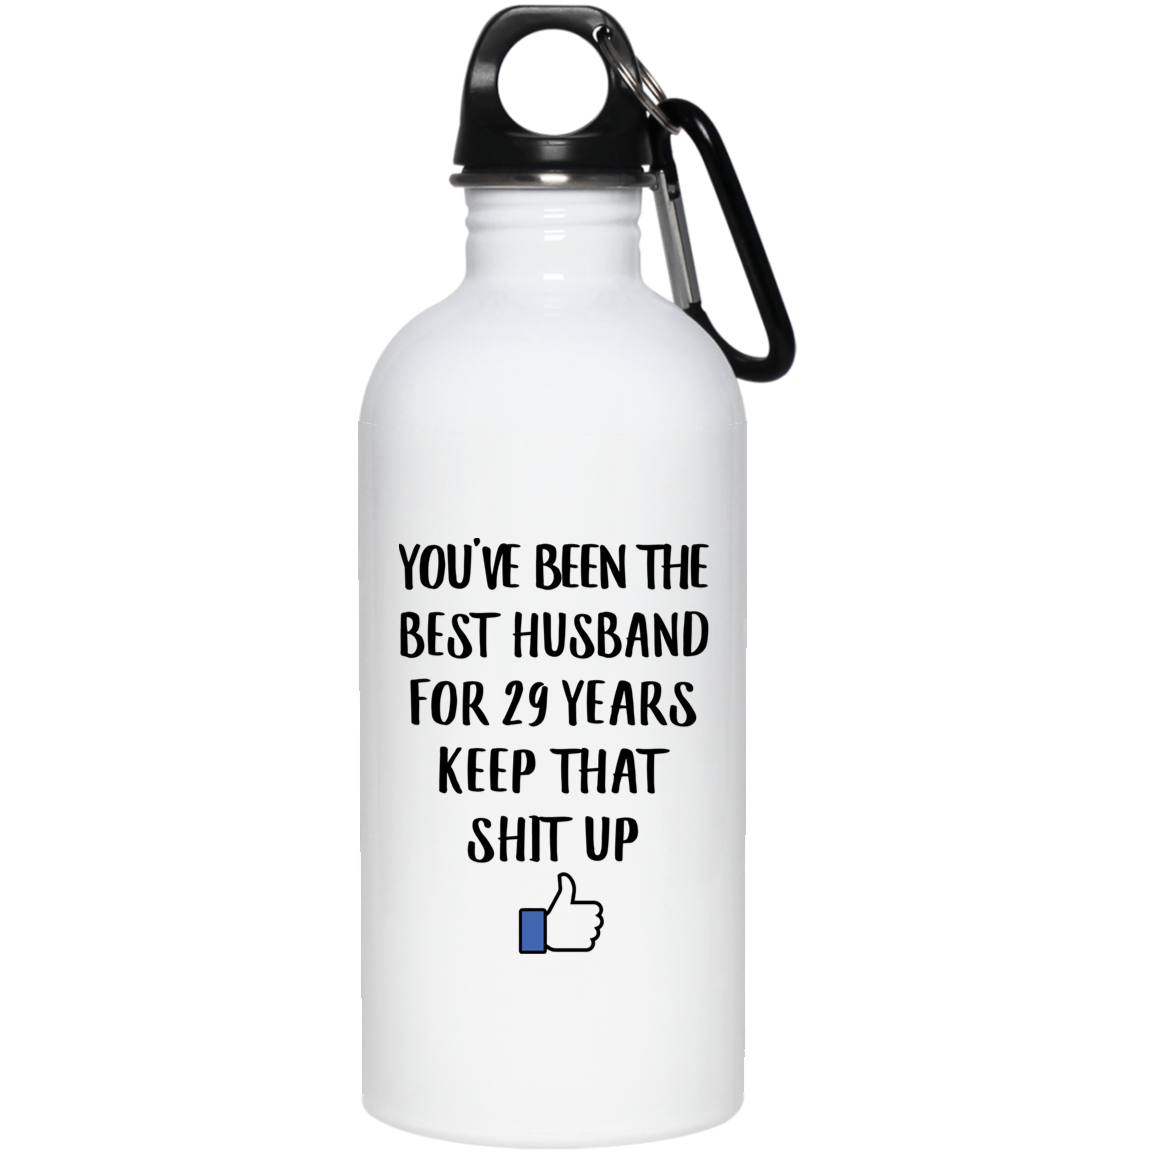 29 Year Wedding Anniversary Gift: 29 Year Anniversary Gift For Him 29th Yr Together Water